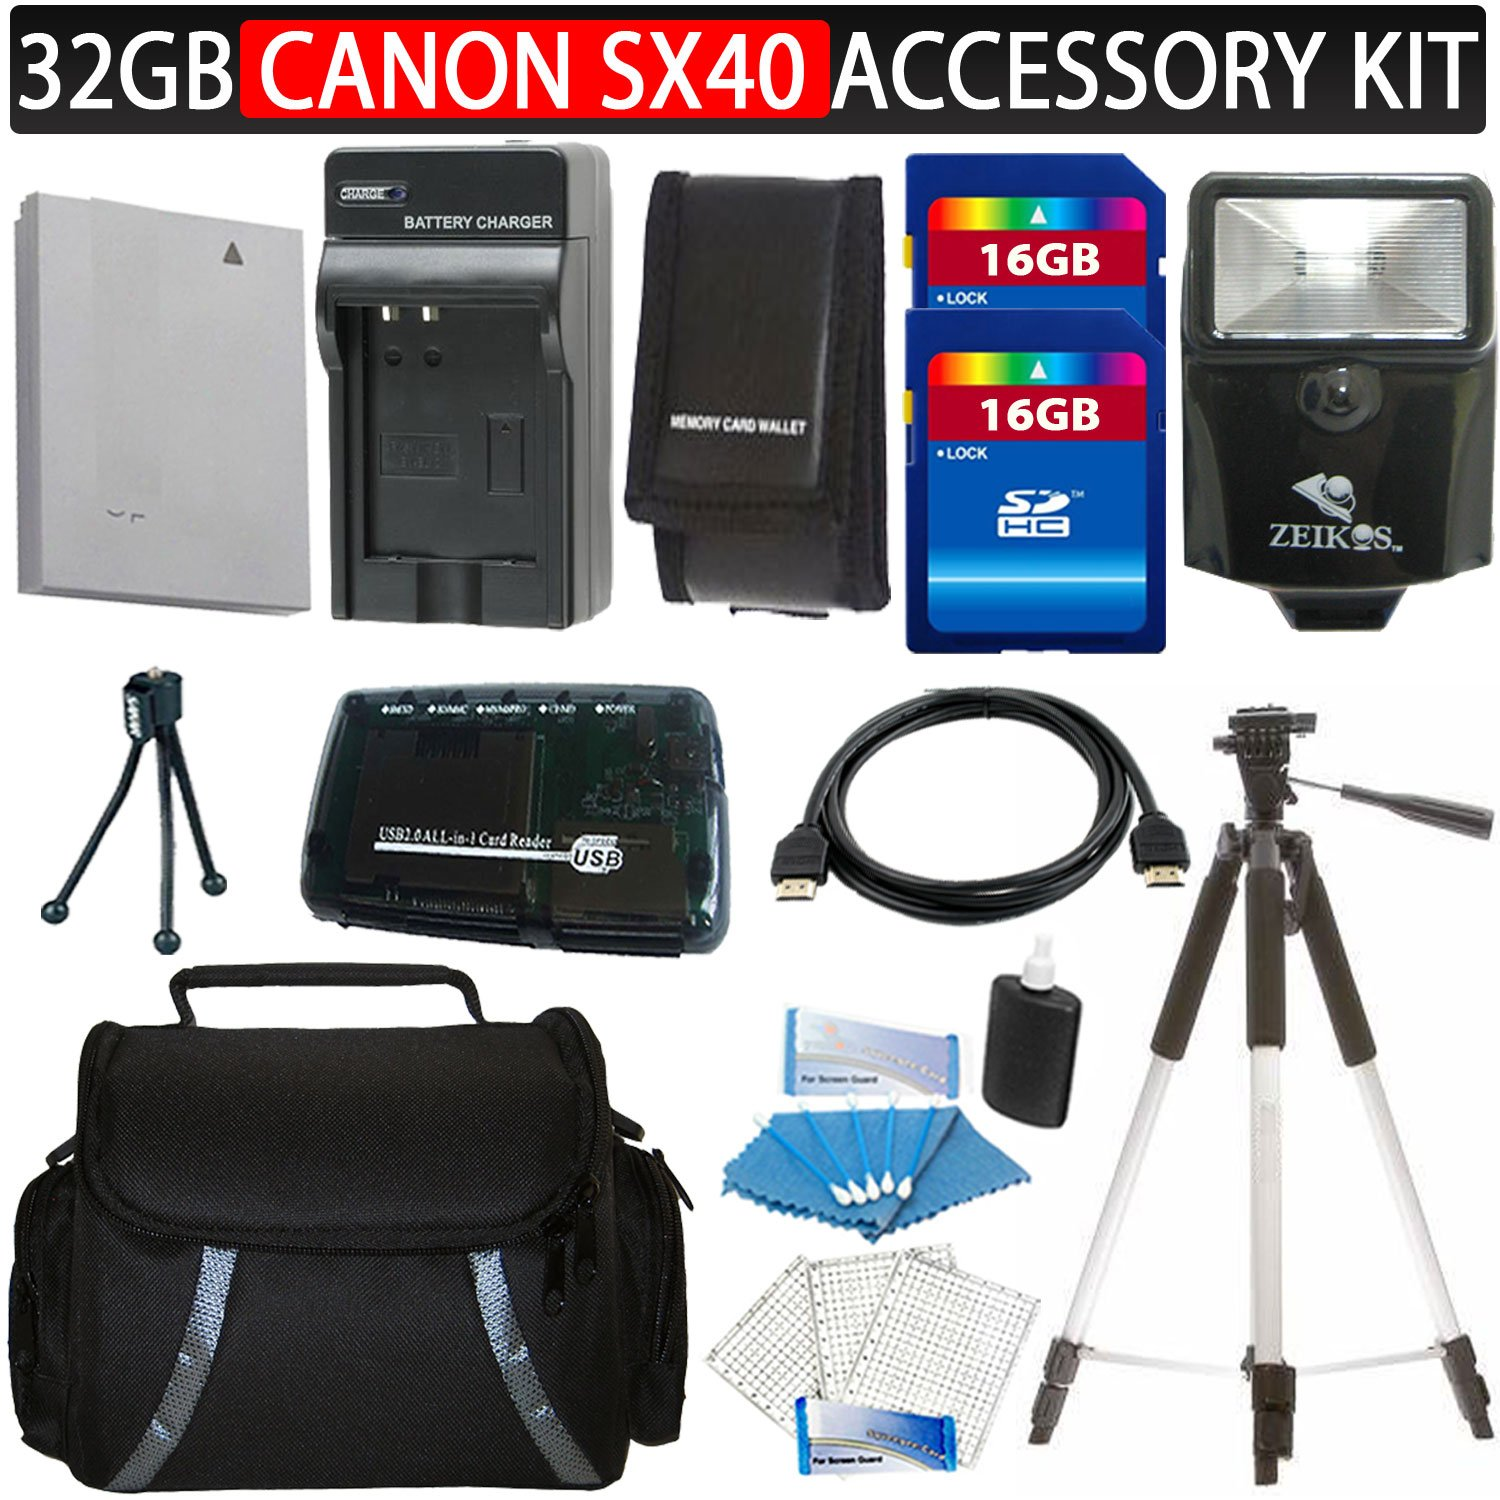 Canon SX40 HS 12.1MP Digital Camera Accessory Kit Includes Canon NB-10L Equivalent Replacement Battery (Generic)+ Charger + 16GB SDHC Memory (2Pcs)+ Reader + Digital Flash + Camera Case + Aluminum Tripod + HDMI Cable + Screen Protector (3Pack) + Mini Trip